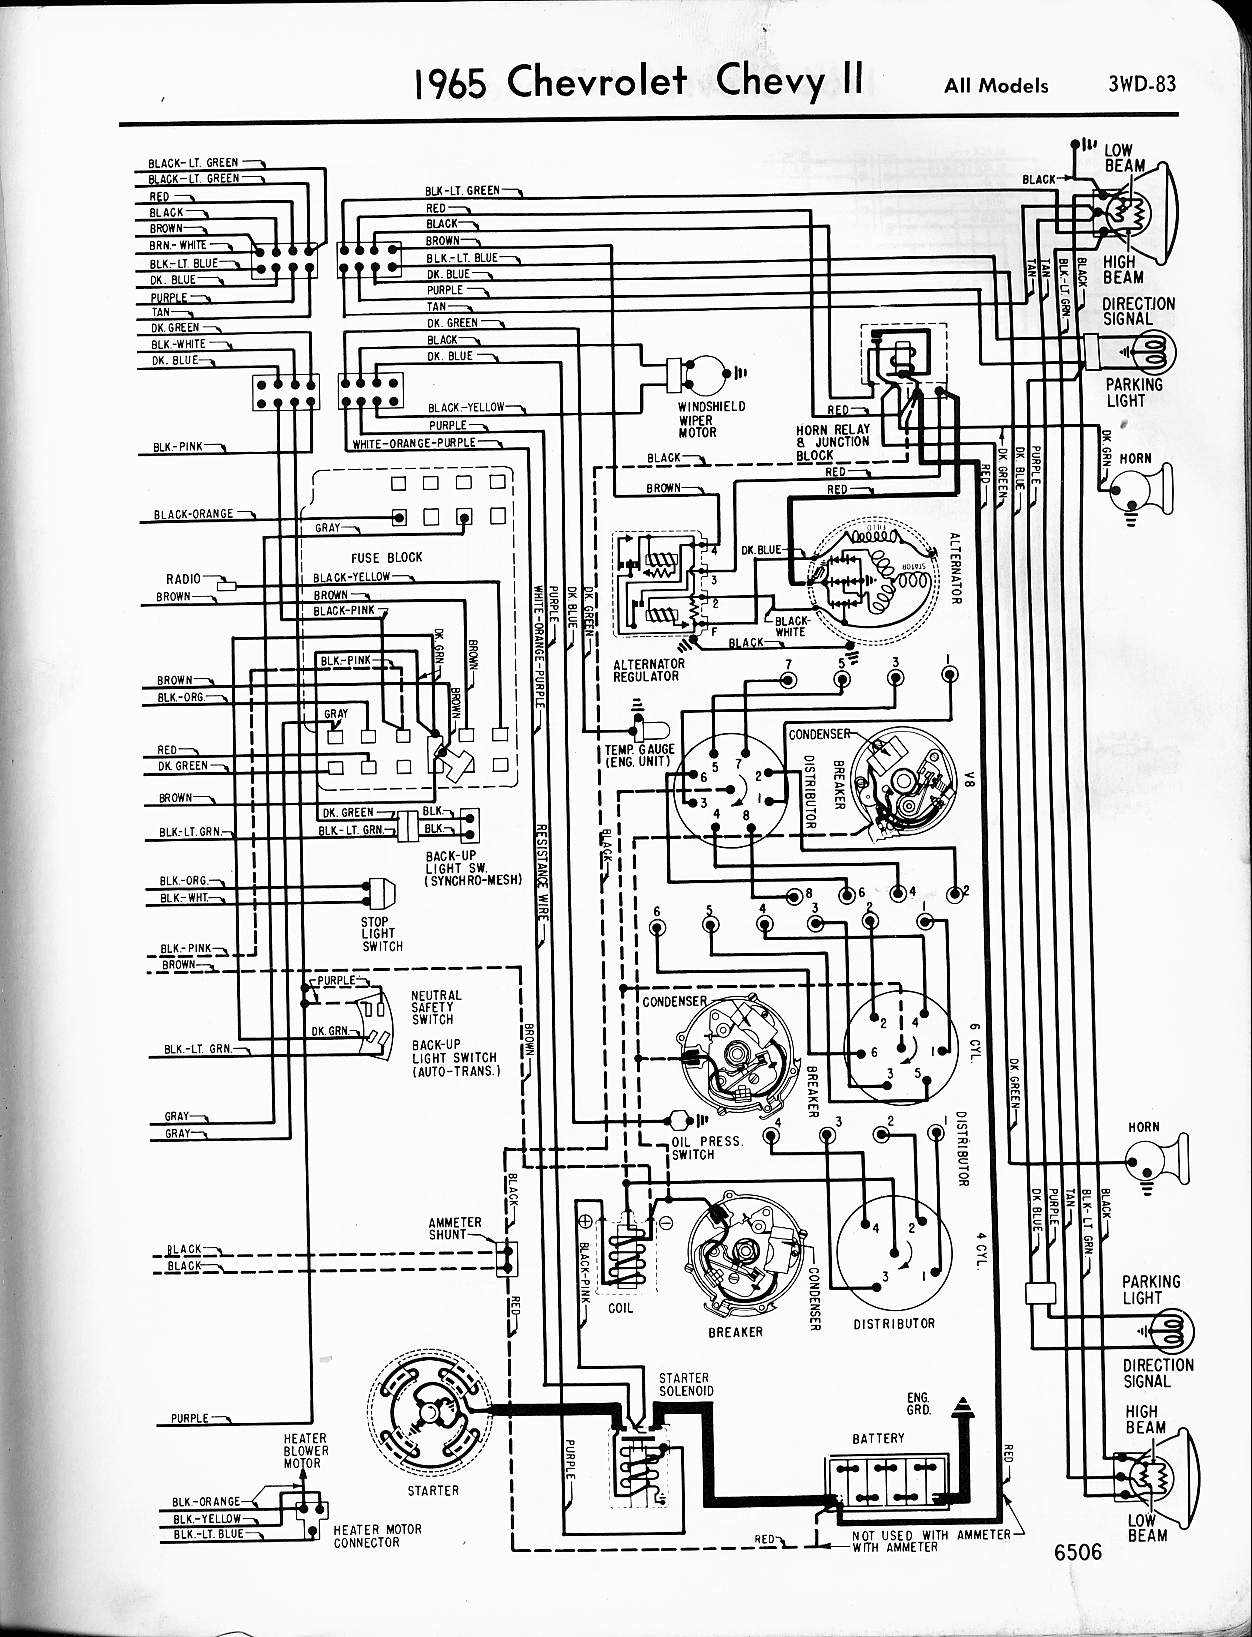 57 - 65 Chevy Wiring Diagrams | 1965 Chevy Headlight Wiring |  | The Old Car Manual Project